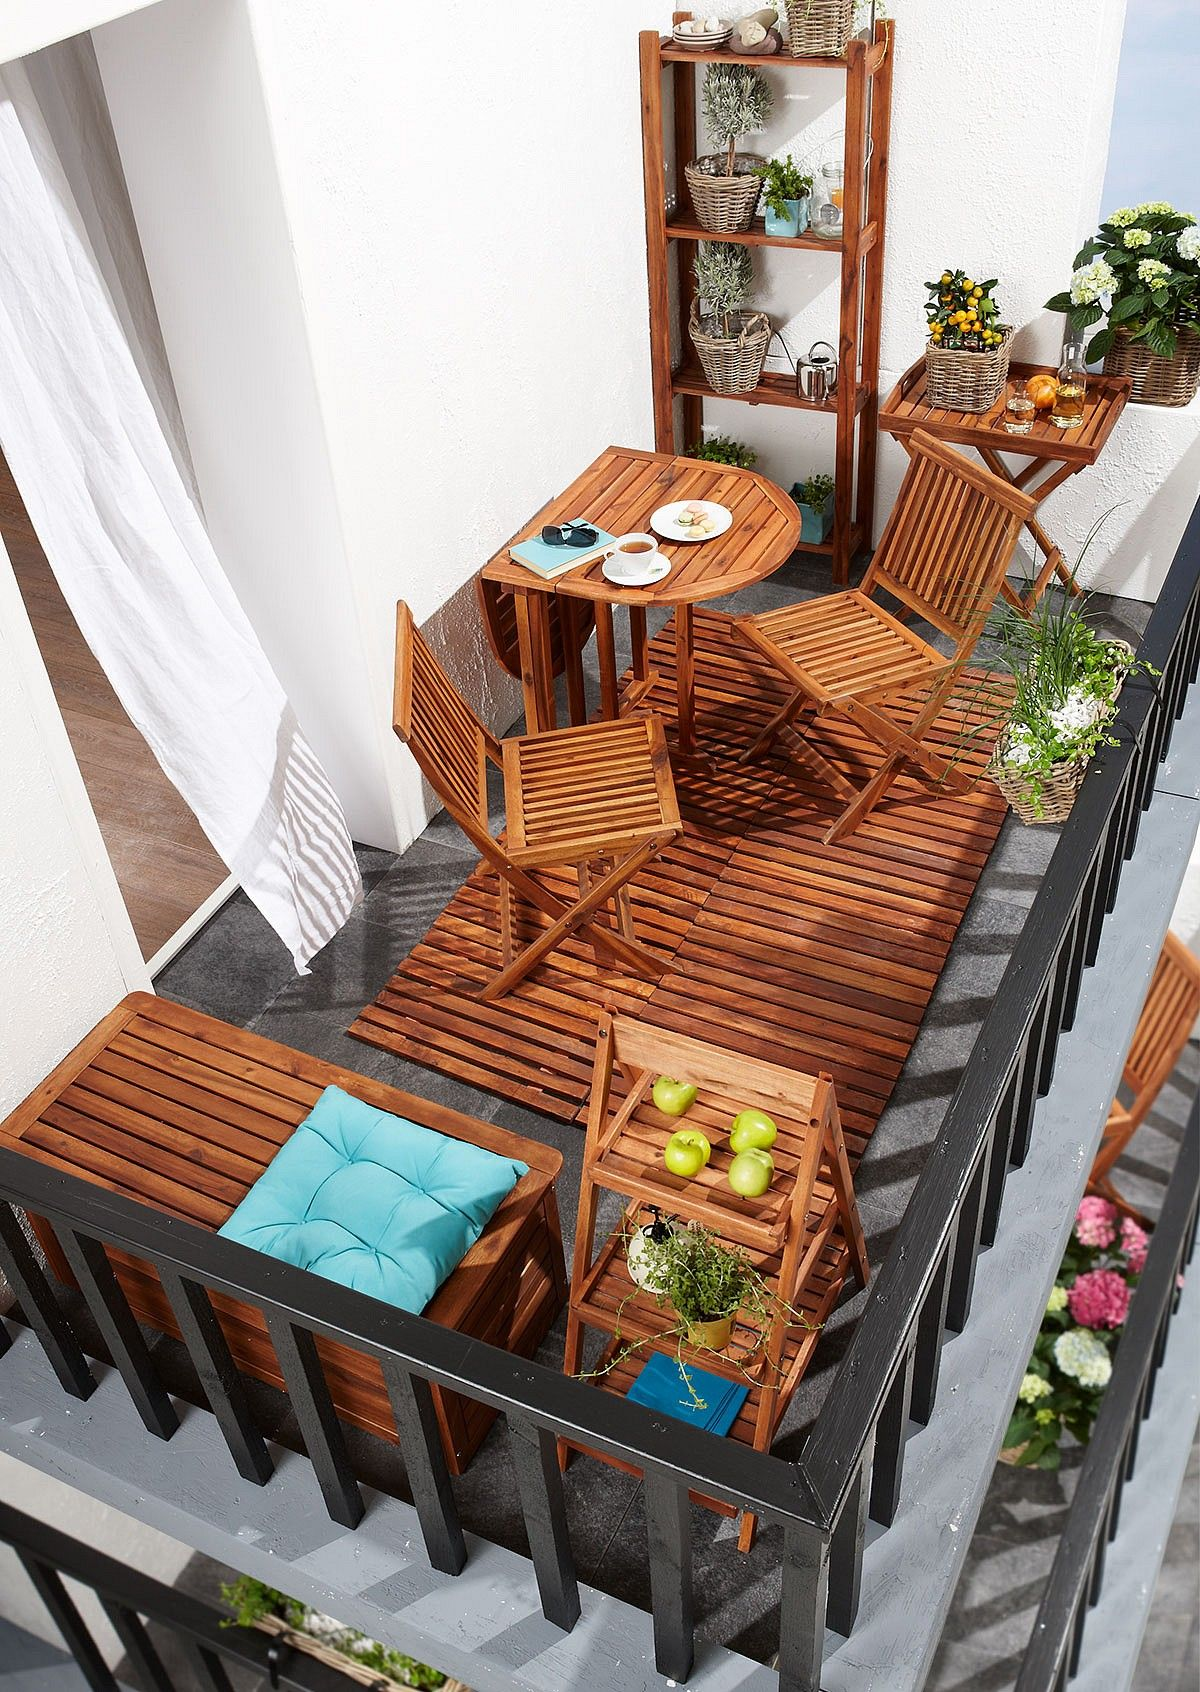 Small Apartment Balcony Decorating Ideas (61 - Apartment Balconies, Small